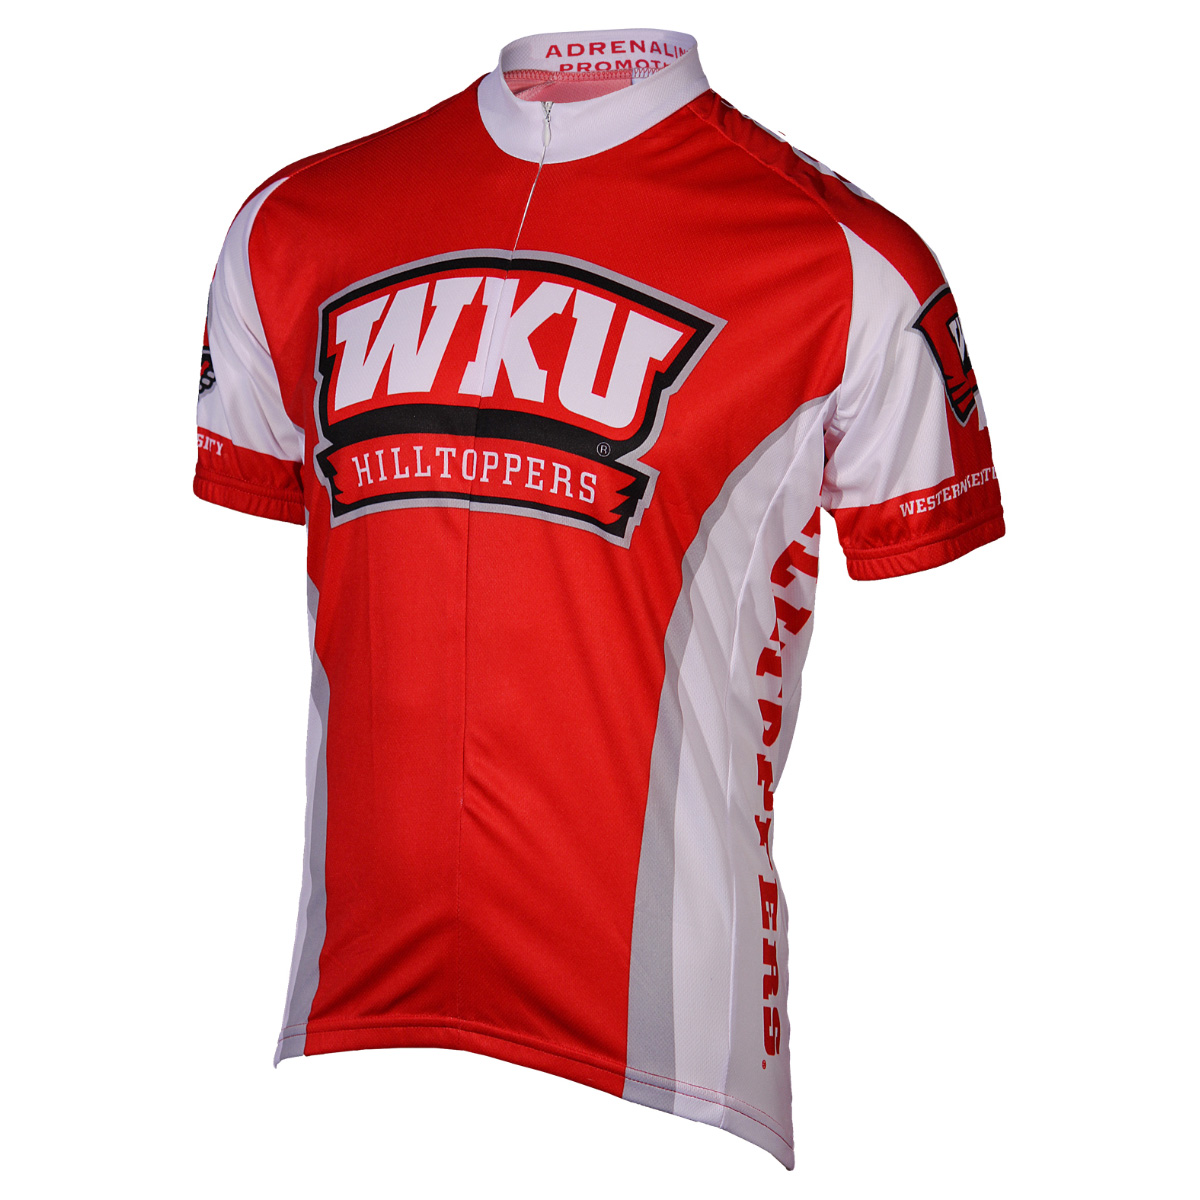 Adrenaline Promotions Western Kentucky University Hilltoppers Cycling Jersey